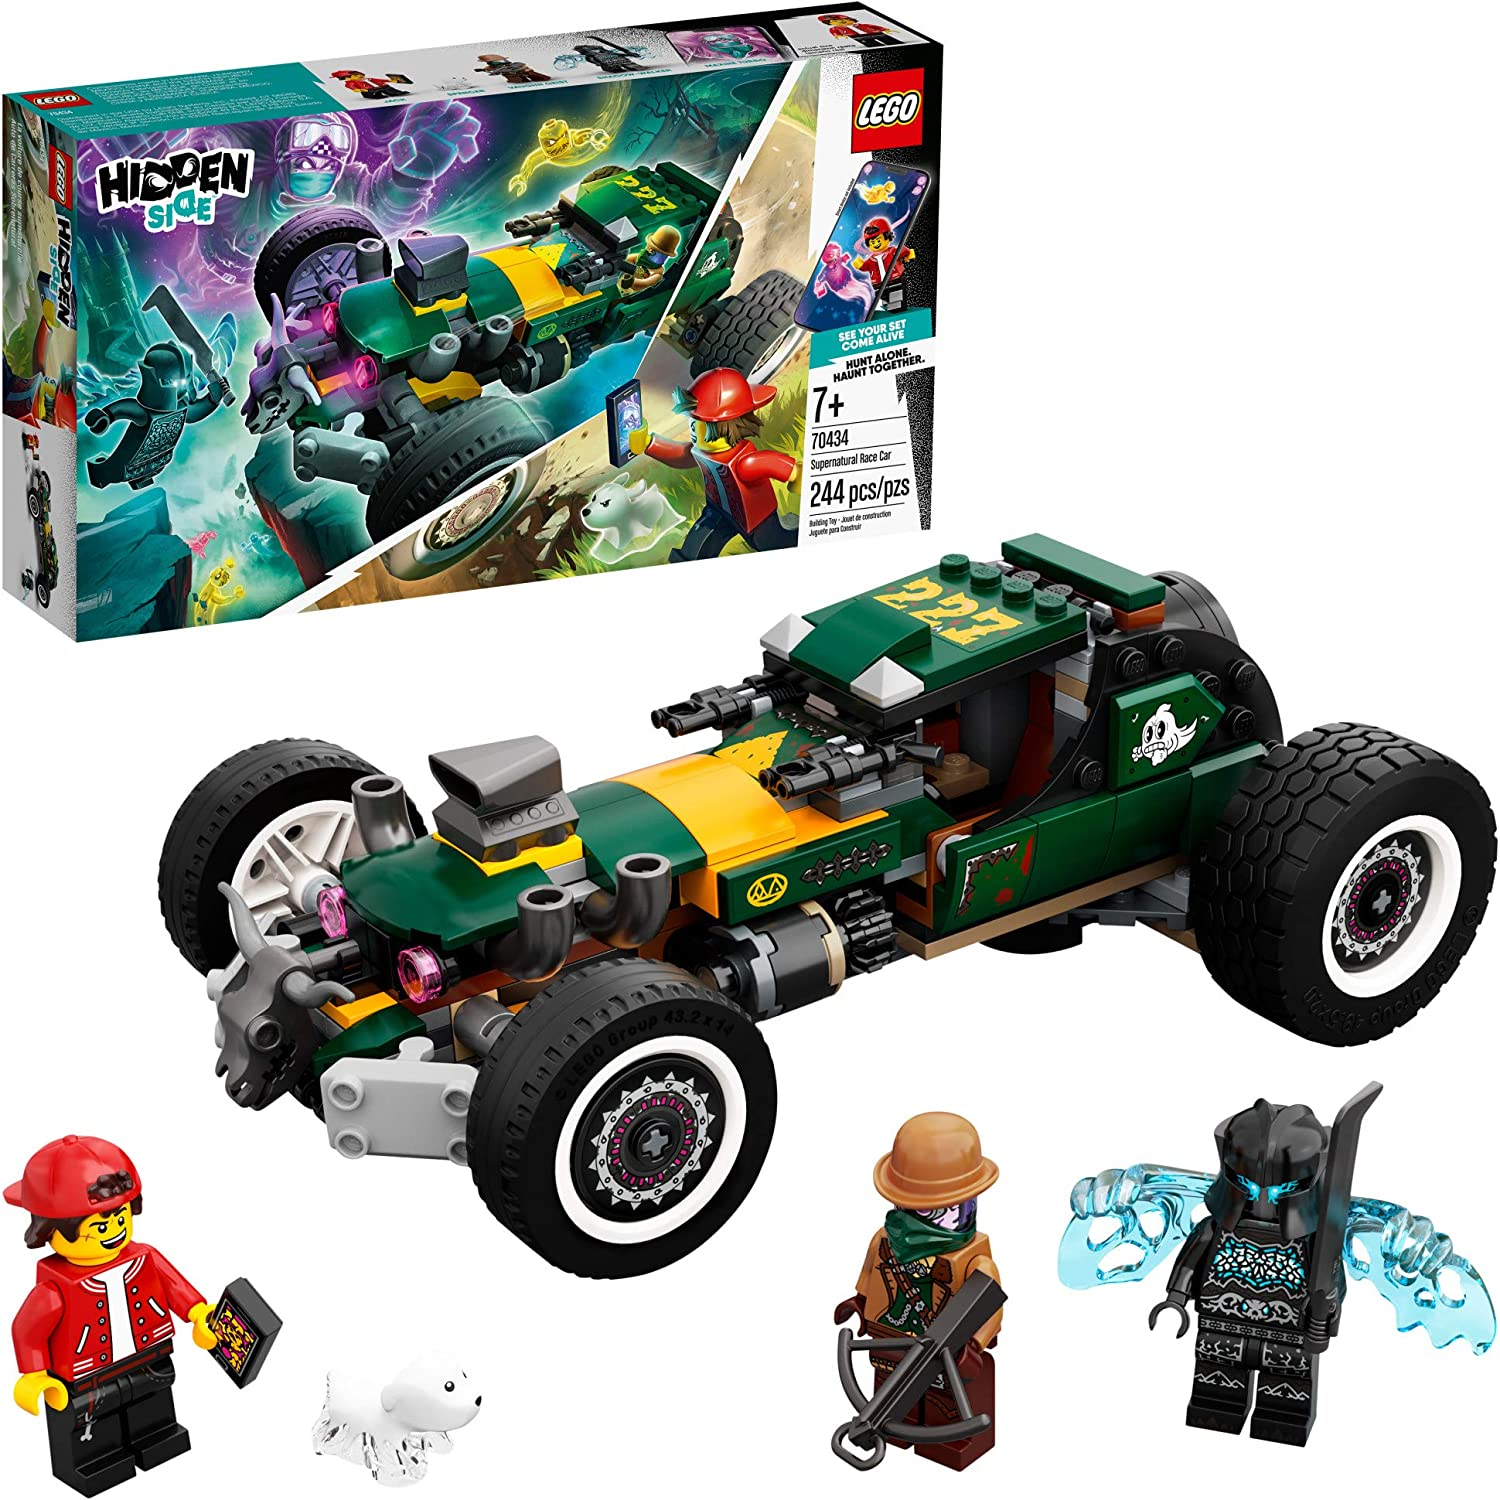 Includes Jack AR 244 Pieces App-Driven Ghost-Hunting Kit Vaughn and Shadow-Walker Minifigures LEGO Hidden Side Supernatural Race Car 70434 New 2020 Ghost Toy Popular Augmented Reality